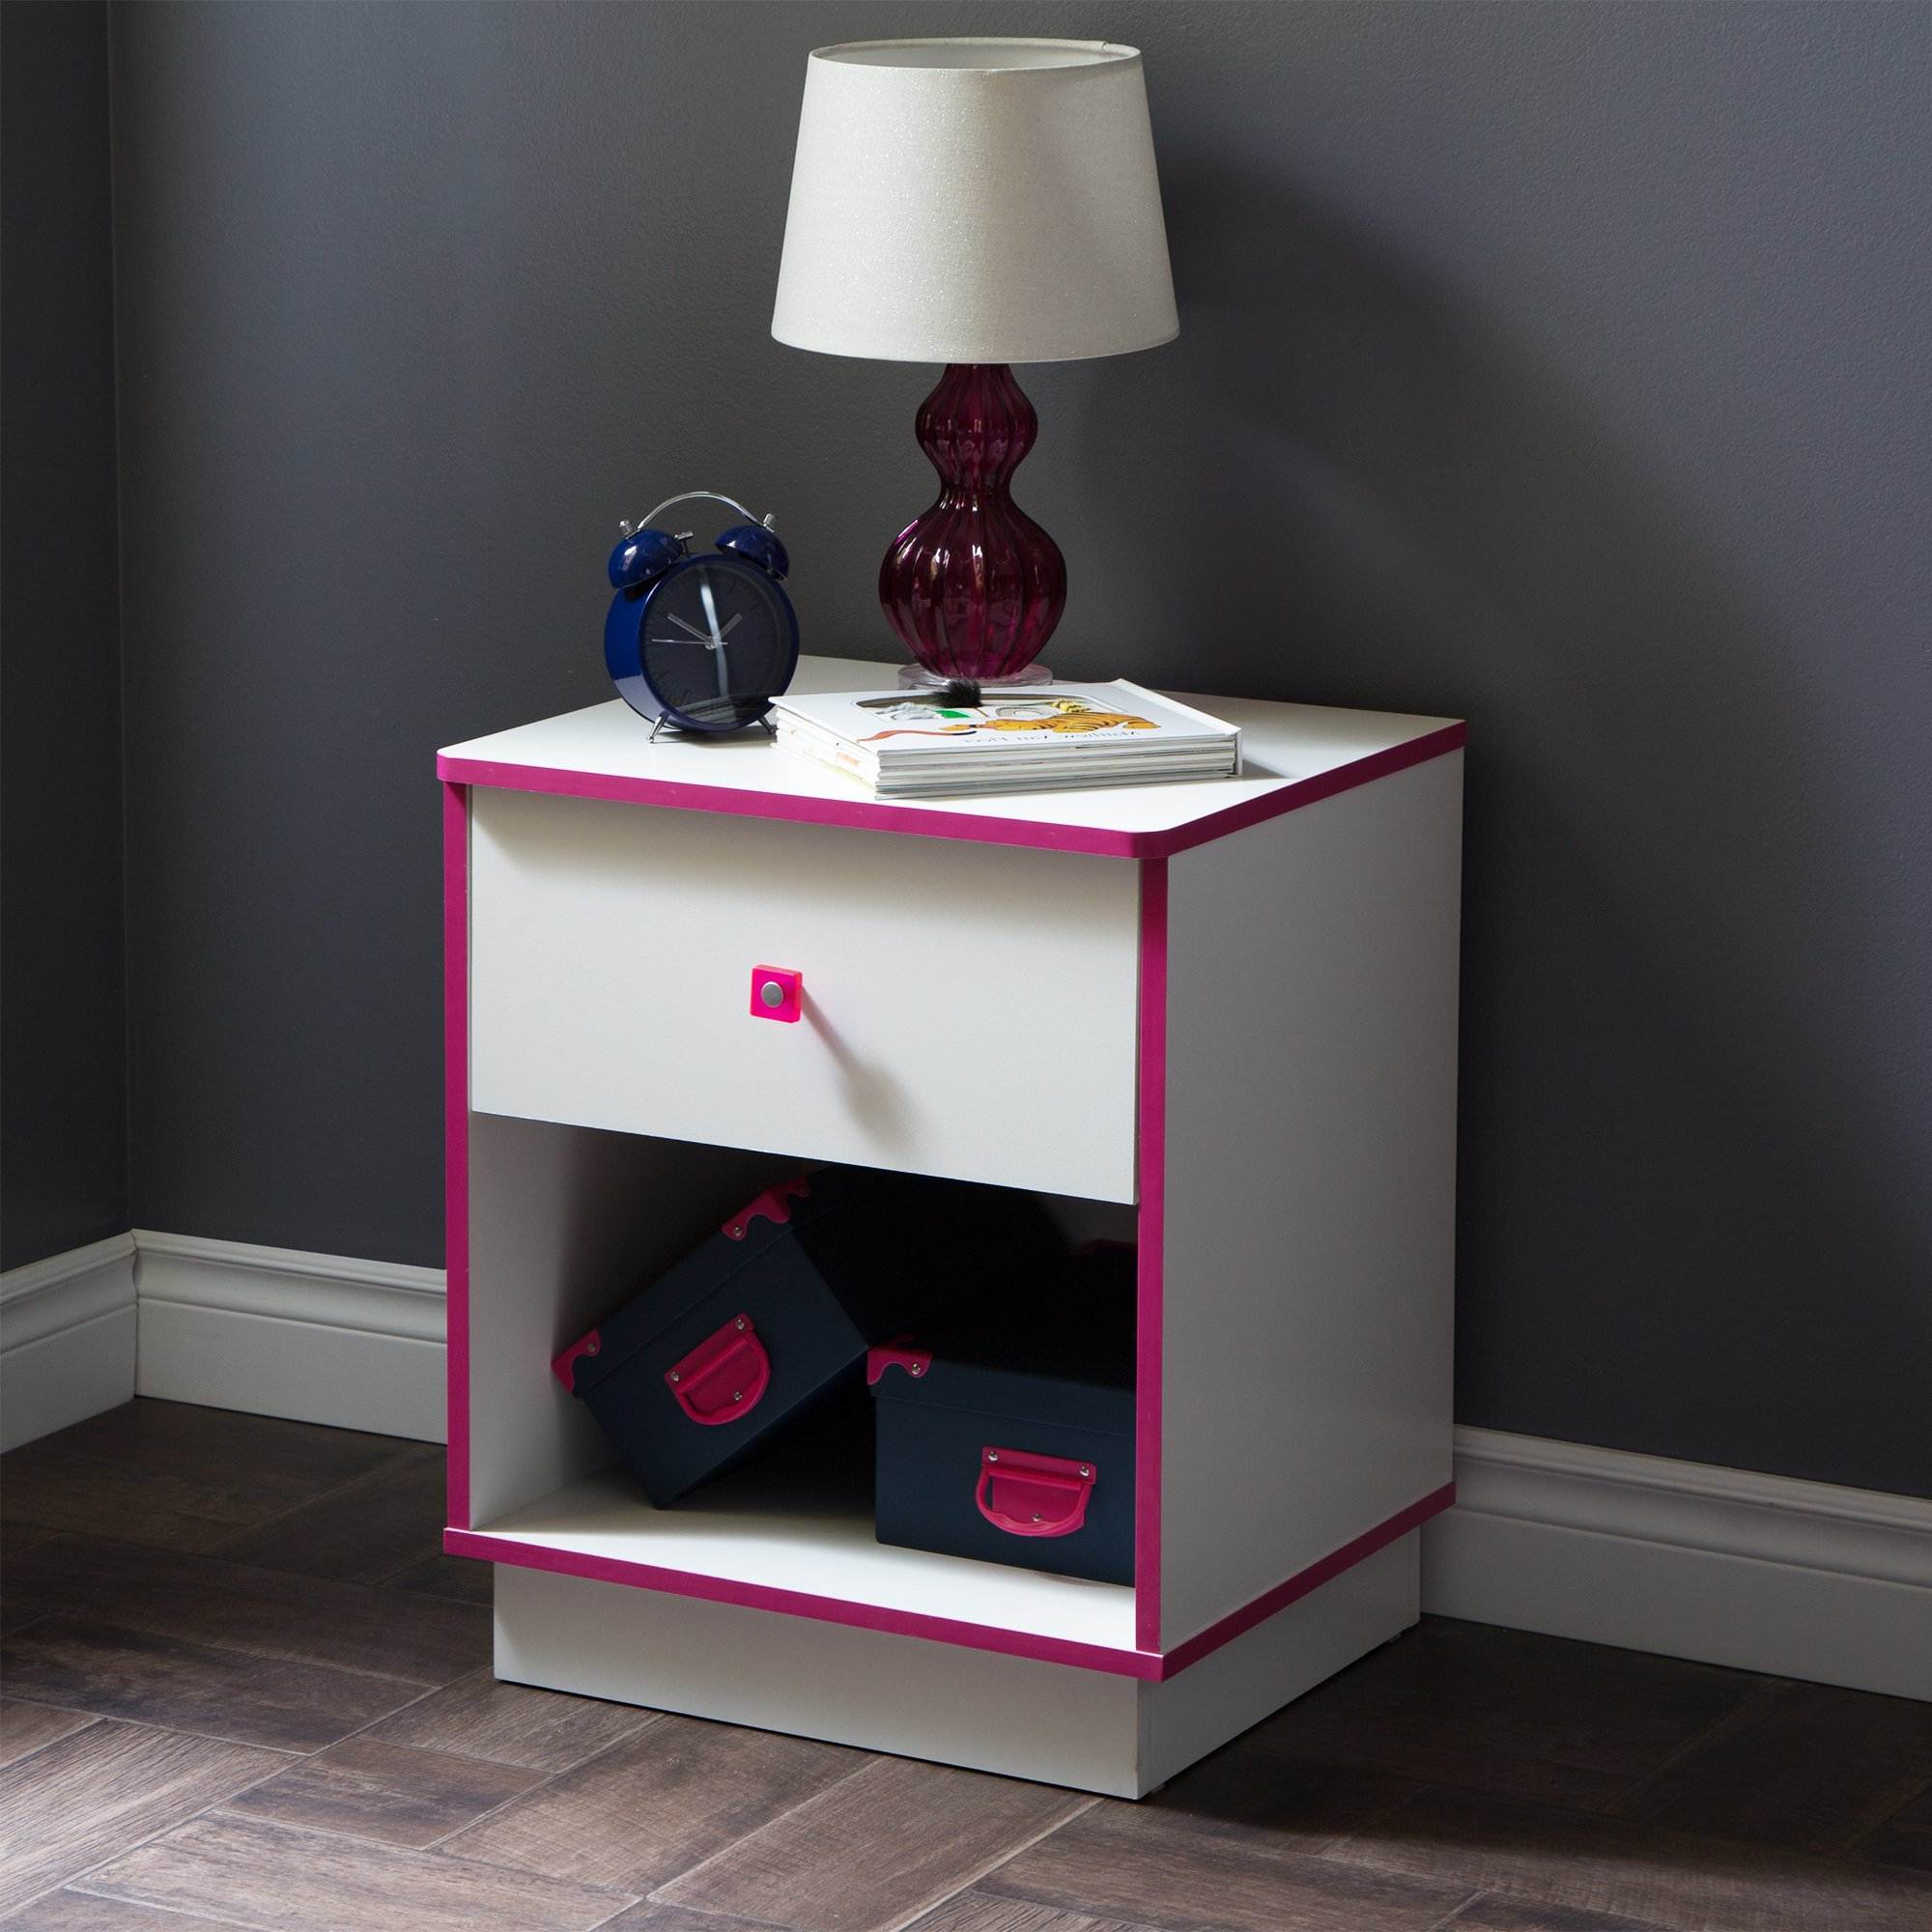 the best attitude 49a23 fd57a Details about Girls Nightstand Side Table White Pink 1-Drawer Storage Space  with Metal Handle